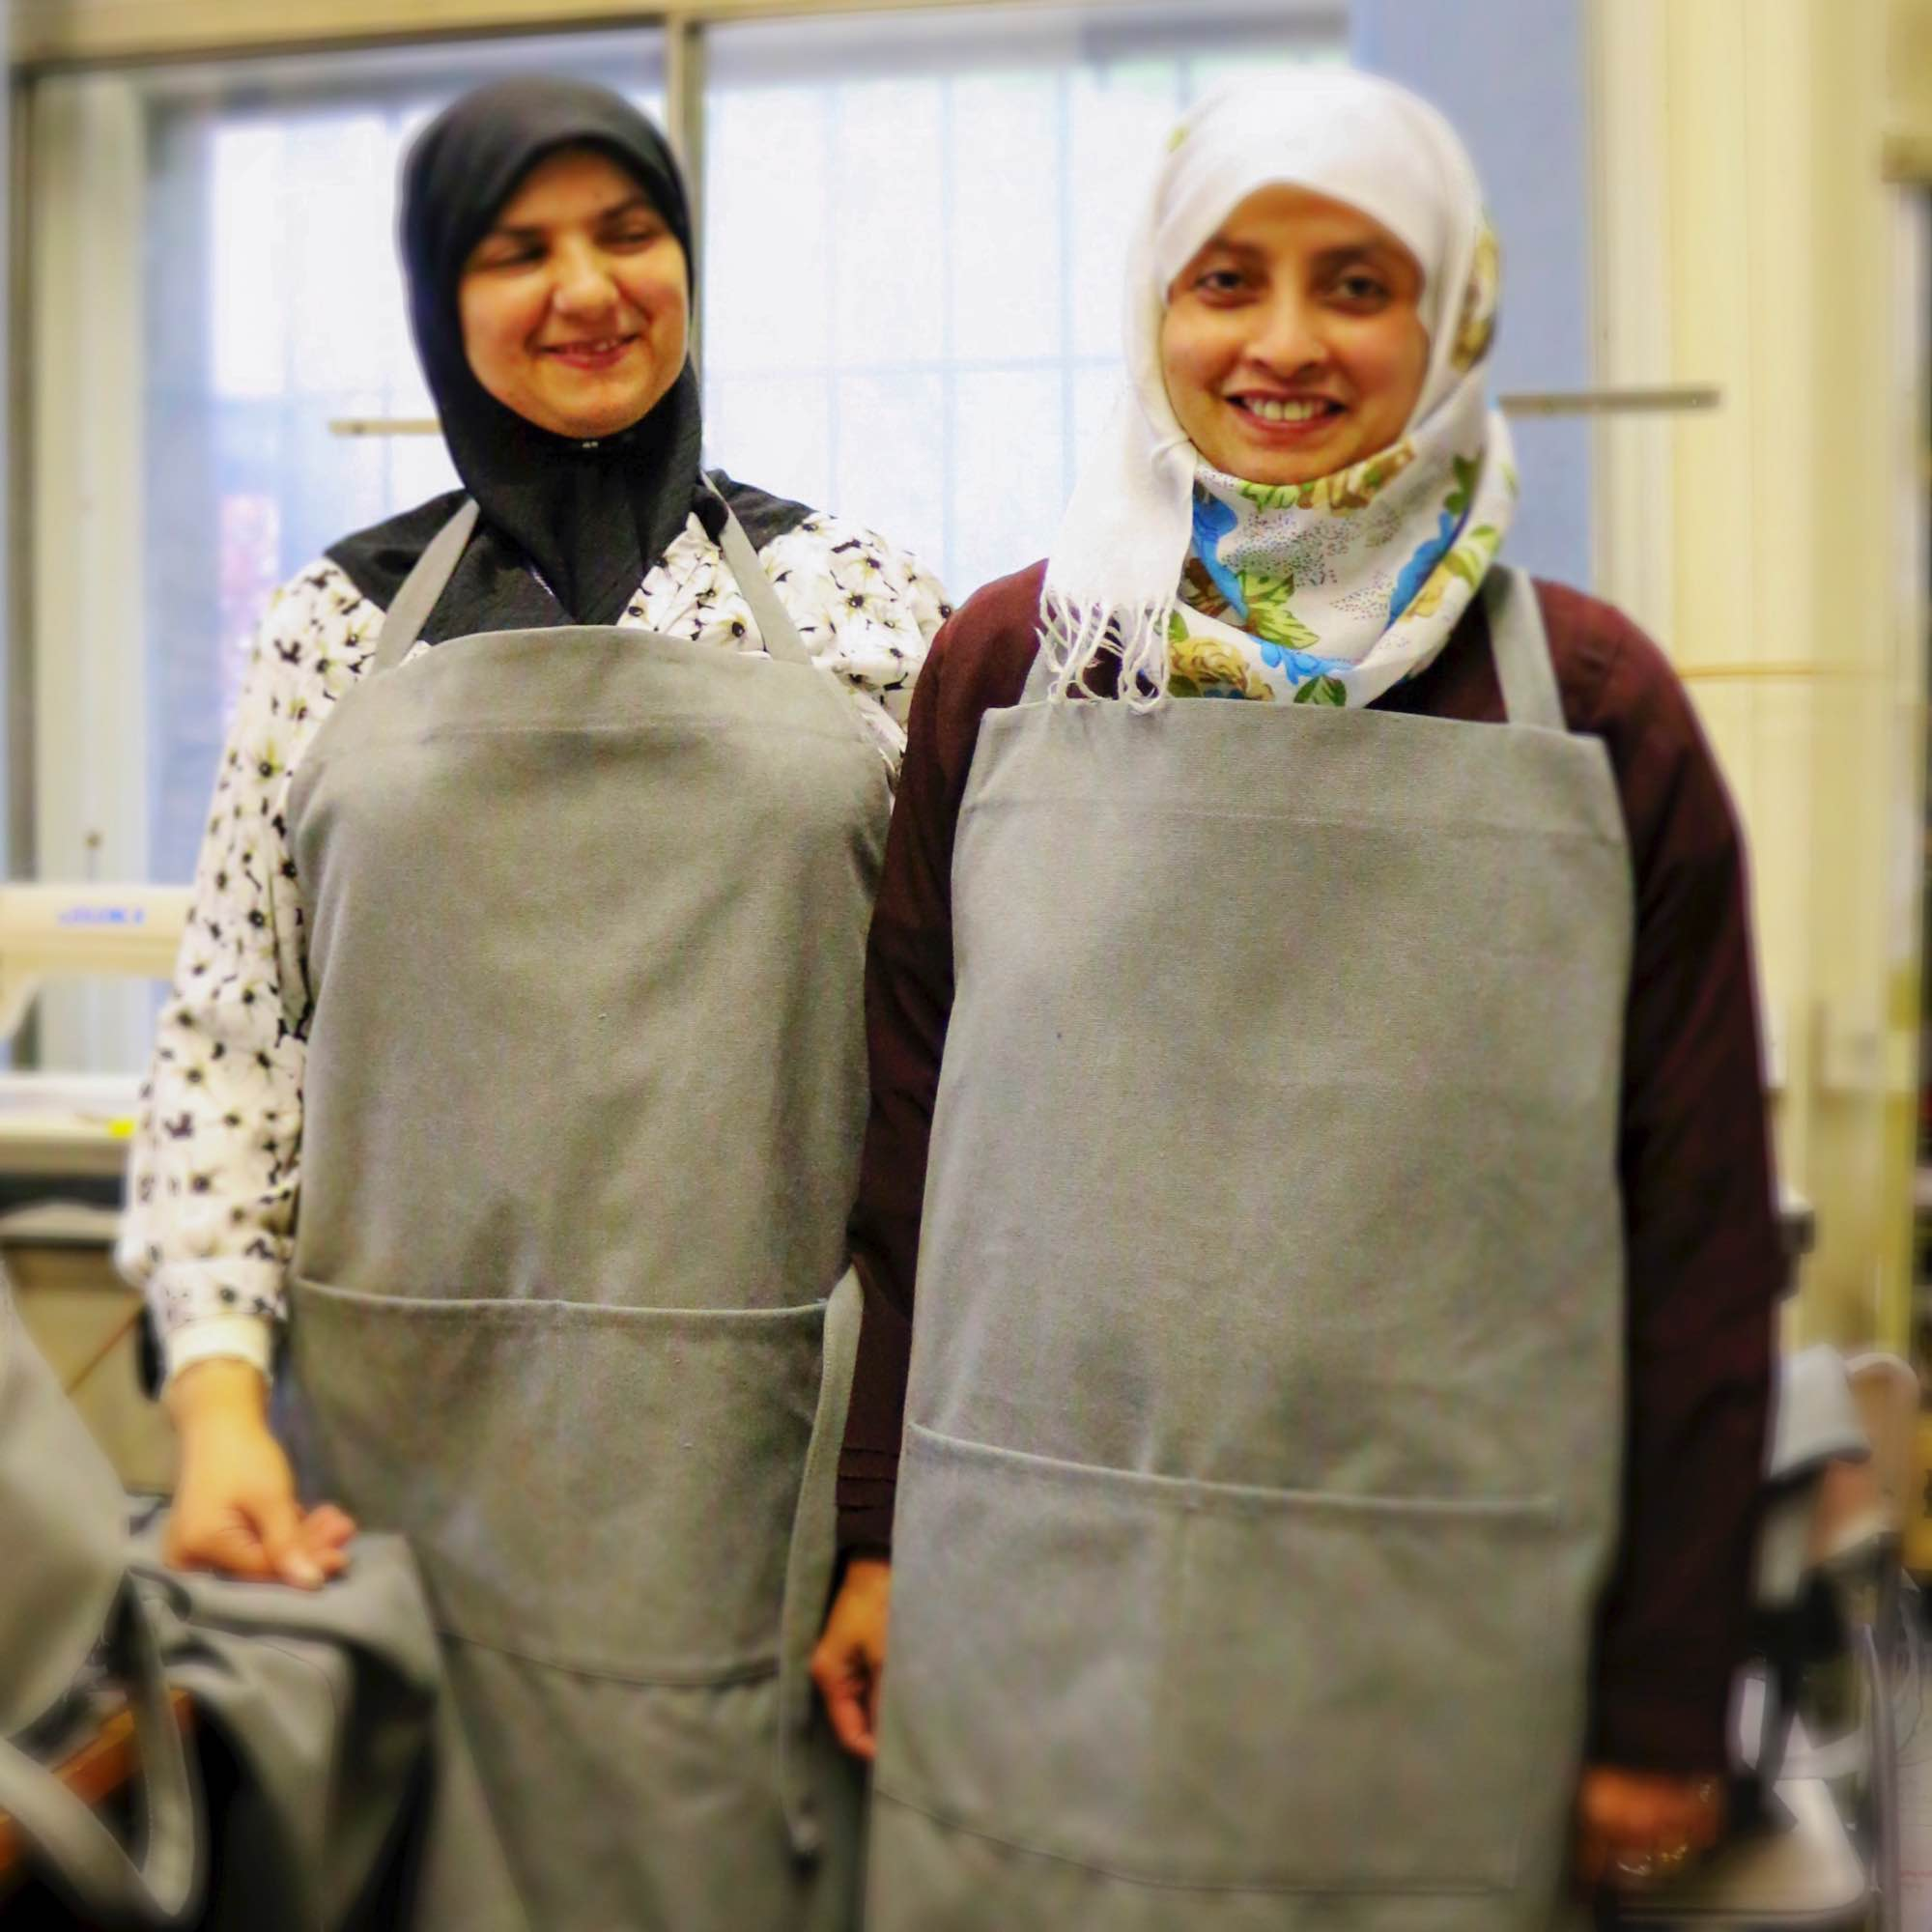 Aerende — ethical interiors, life-improving homewares. Two women wearing aprons